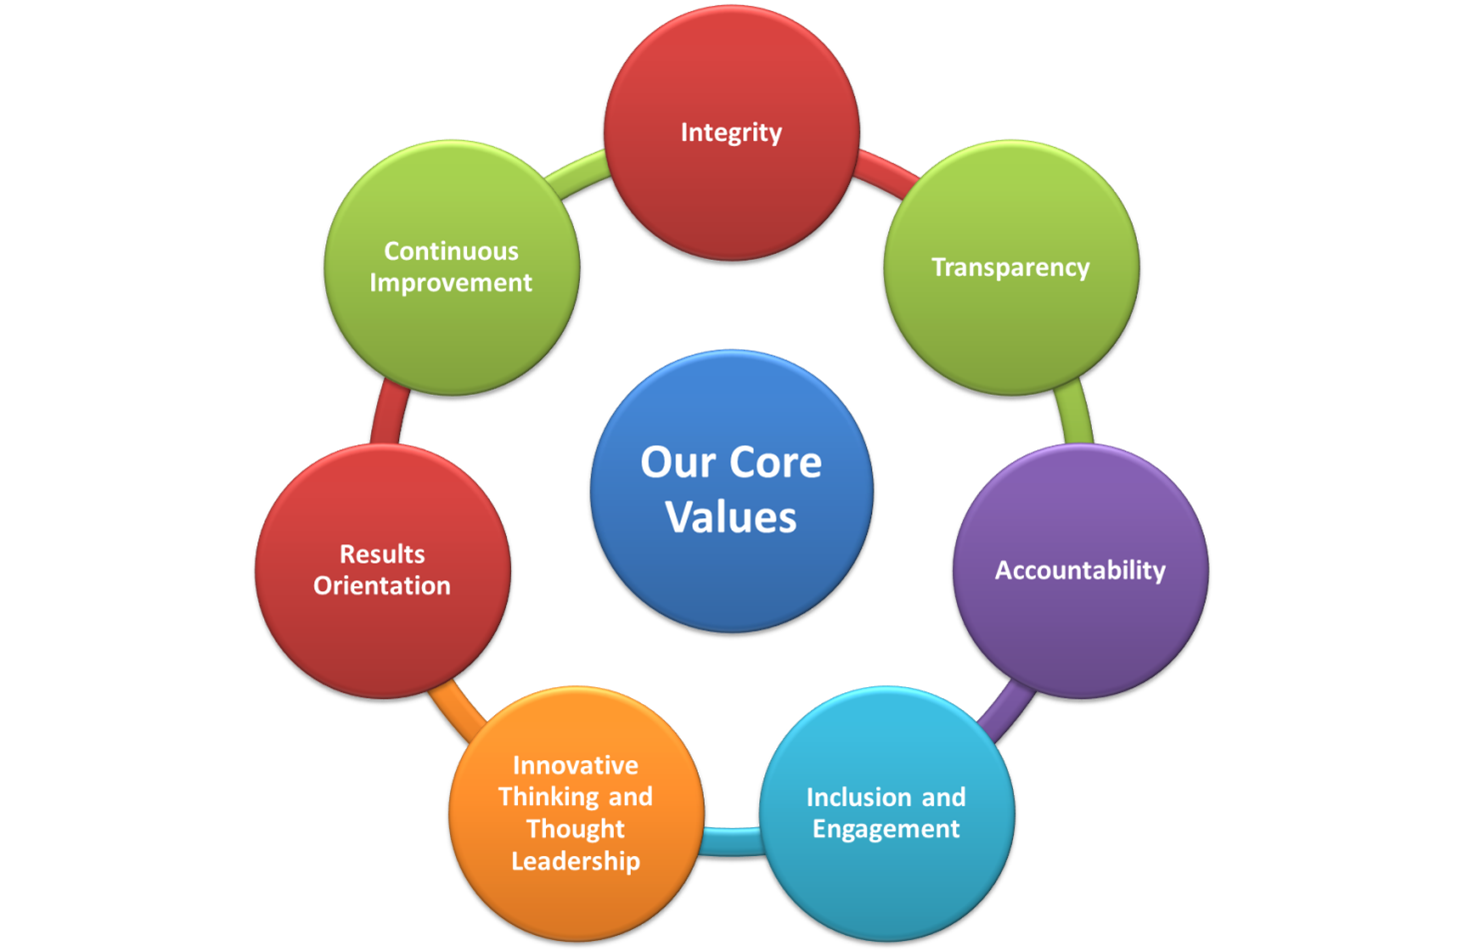 NOBCChE Core Values